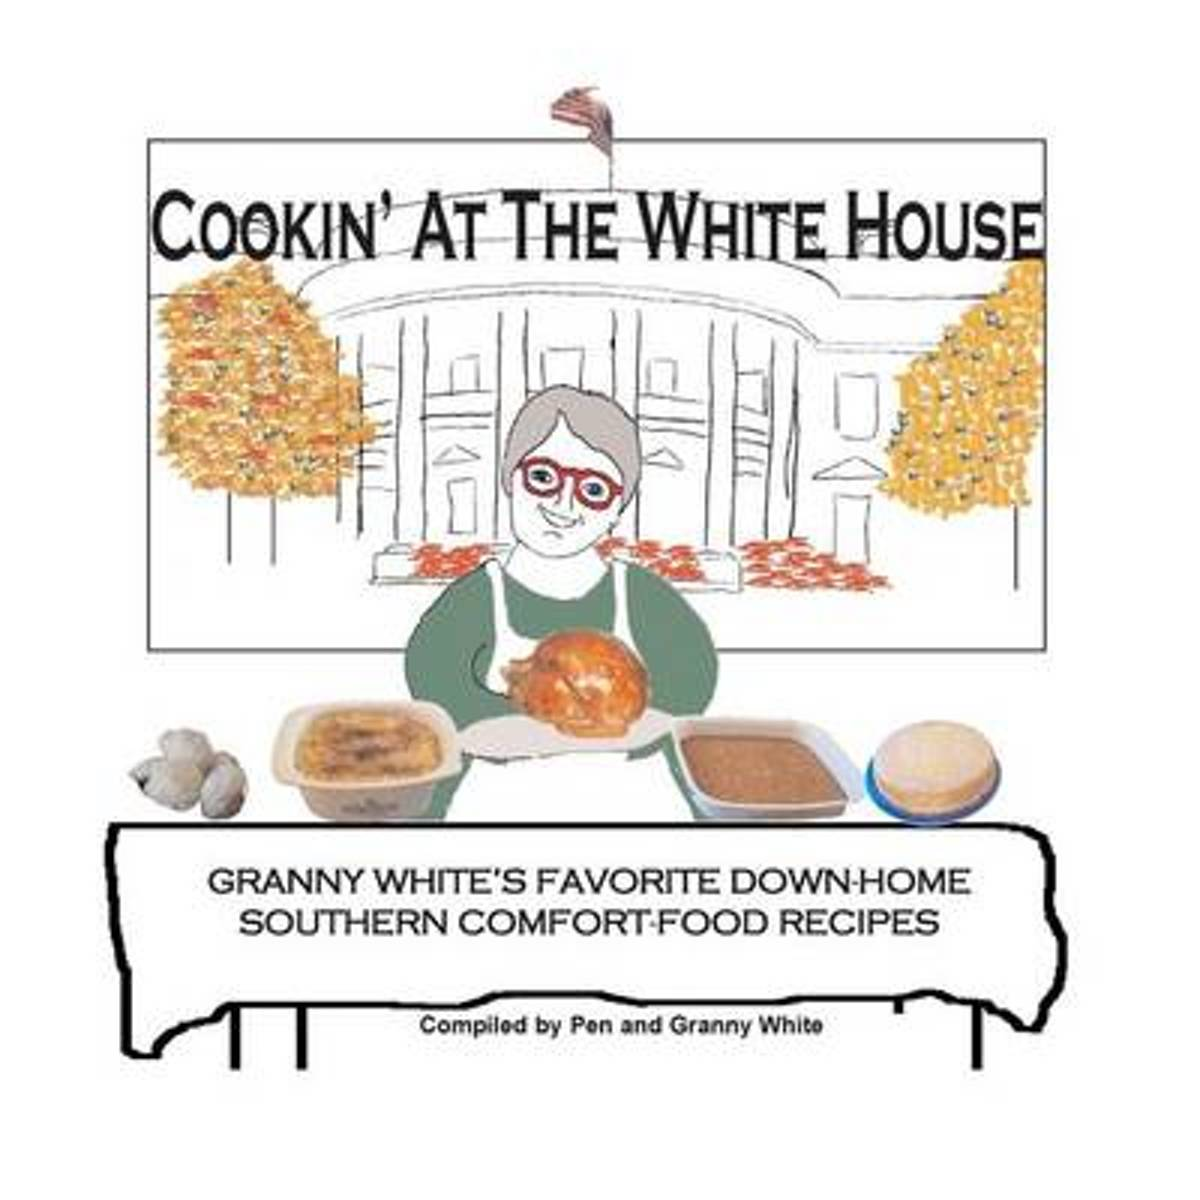 Cookin' at the White House